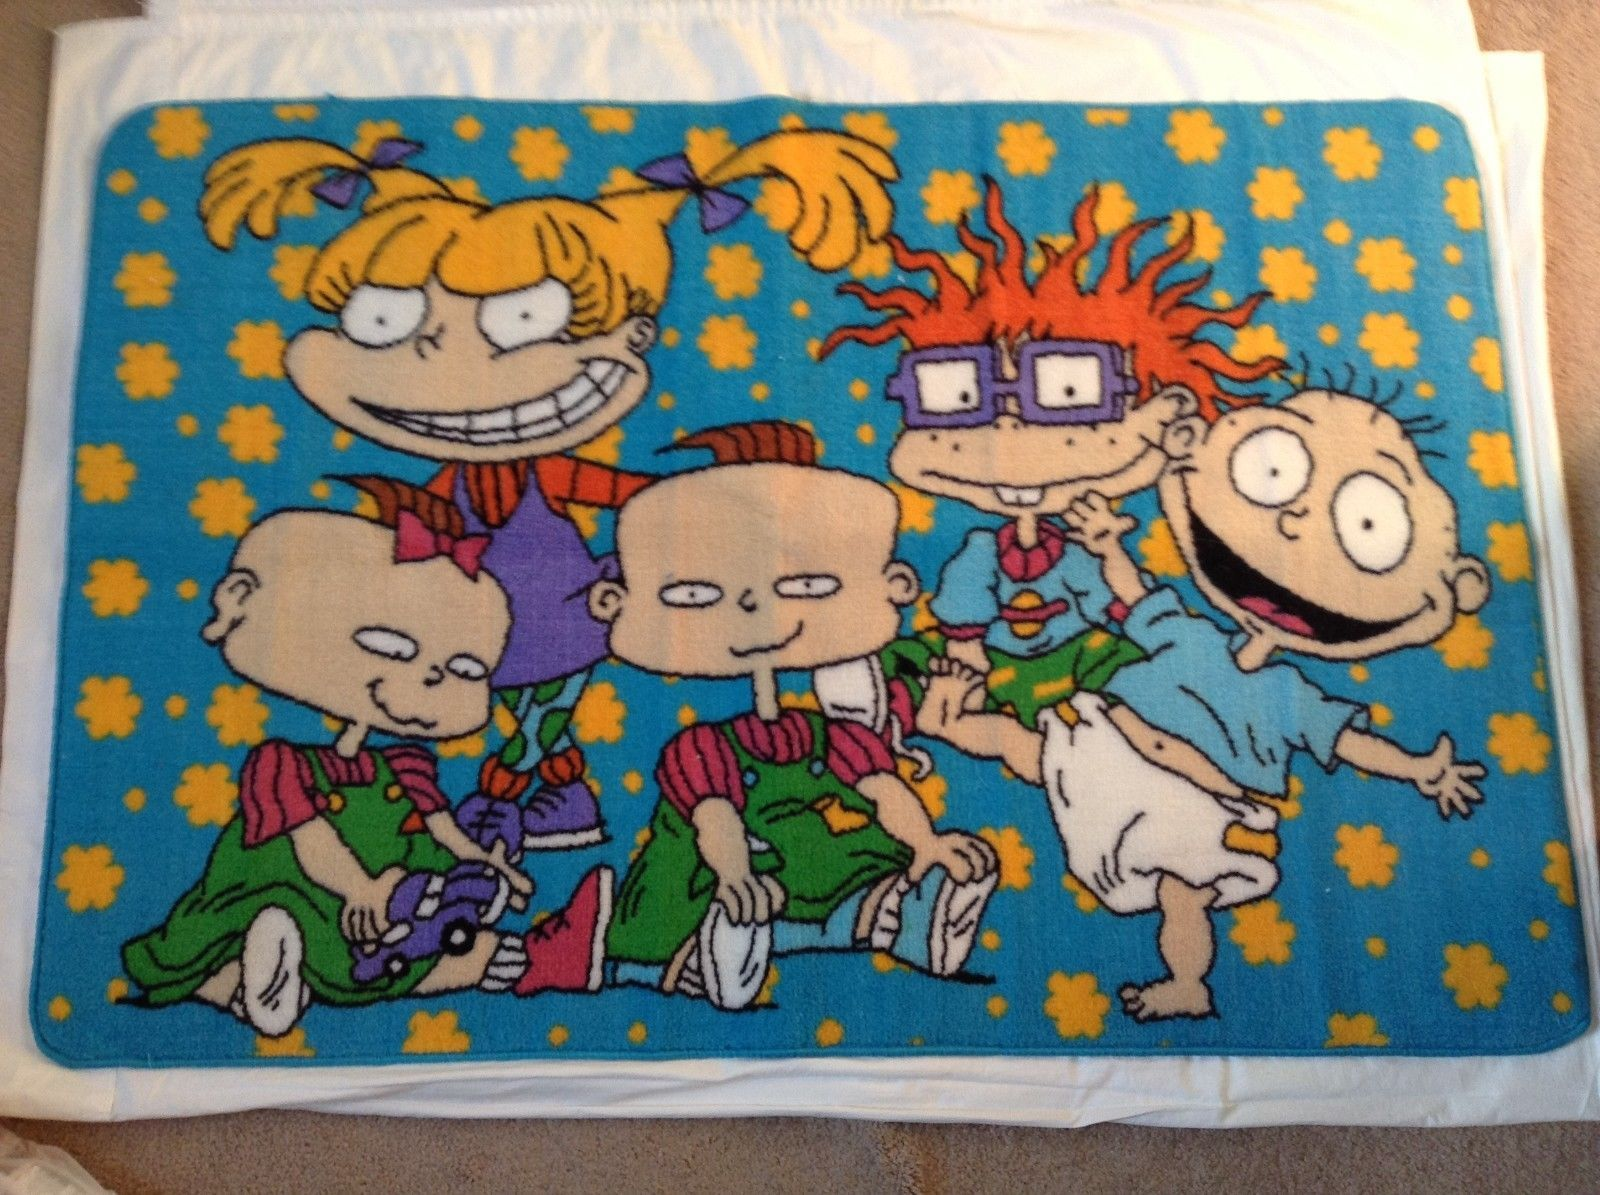 Childrens Rugs Australia Rugrats Area Rug Carpet Nickelodeon 30 X 47 Cartoon 90 39s